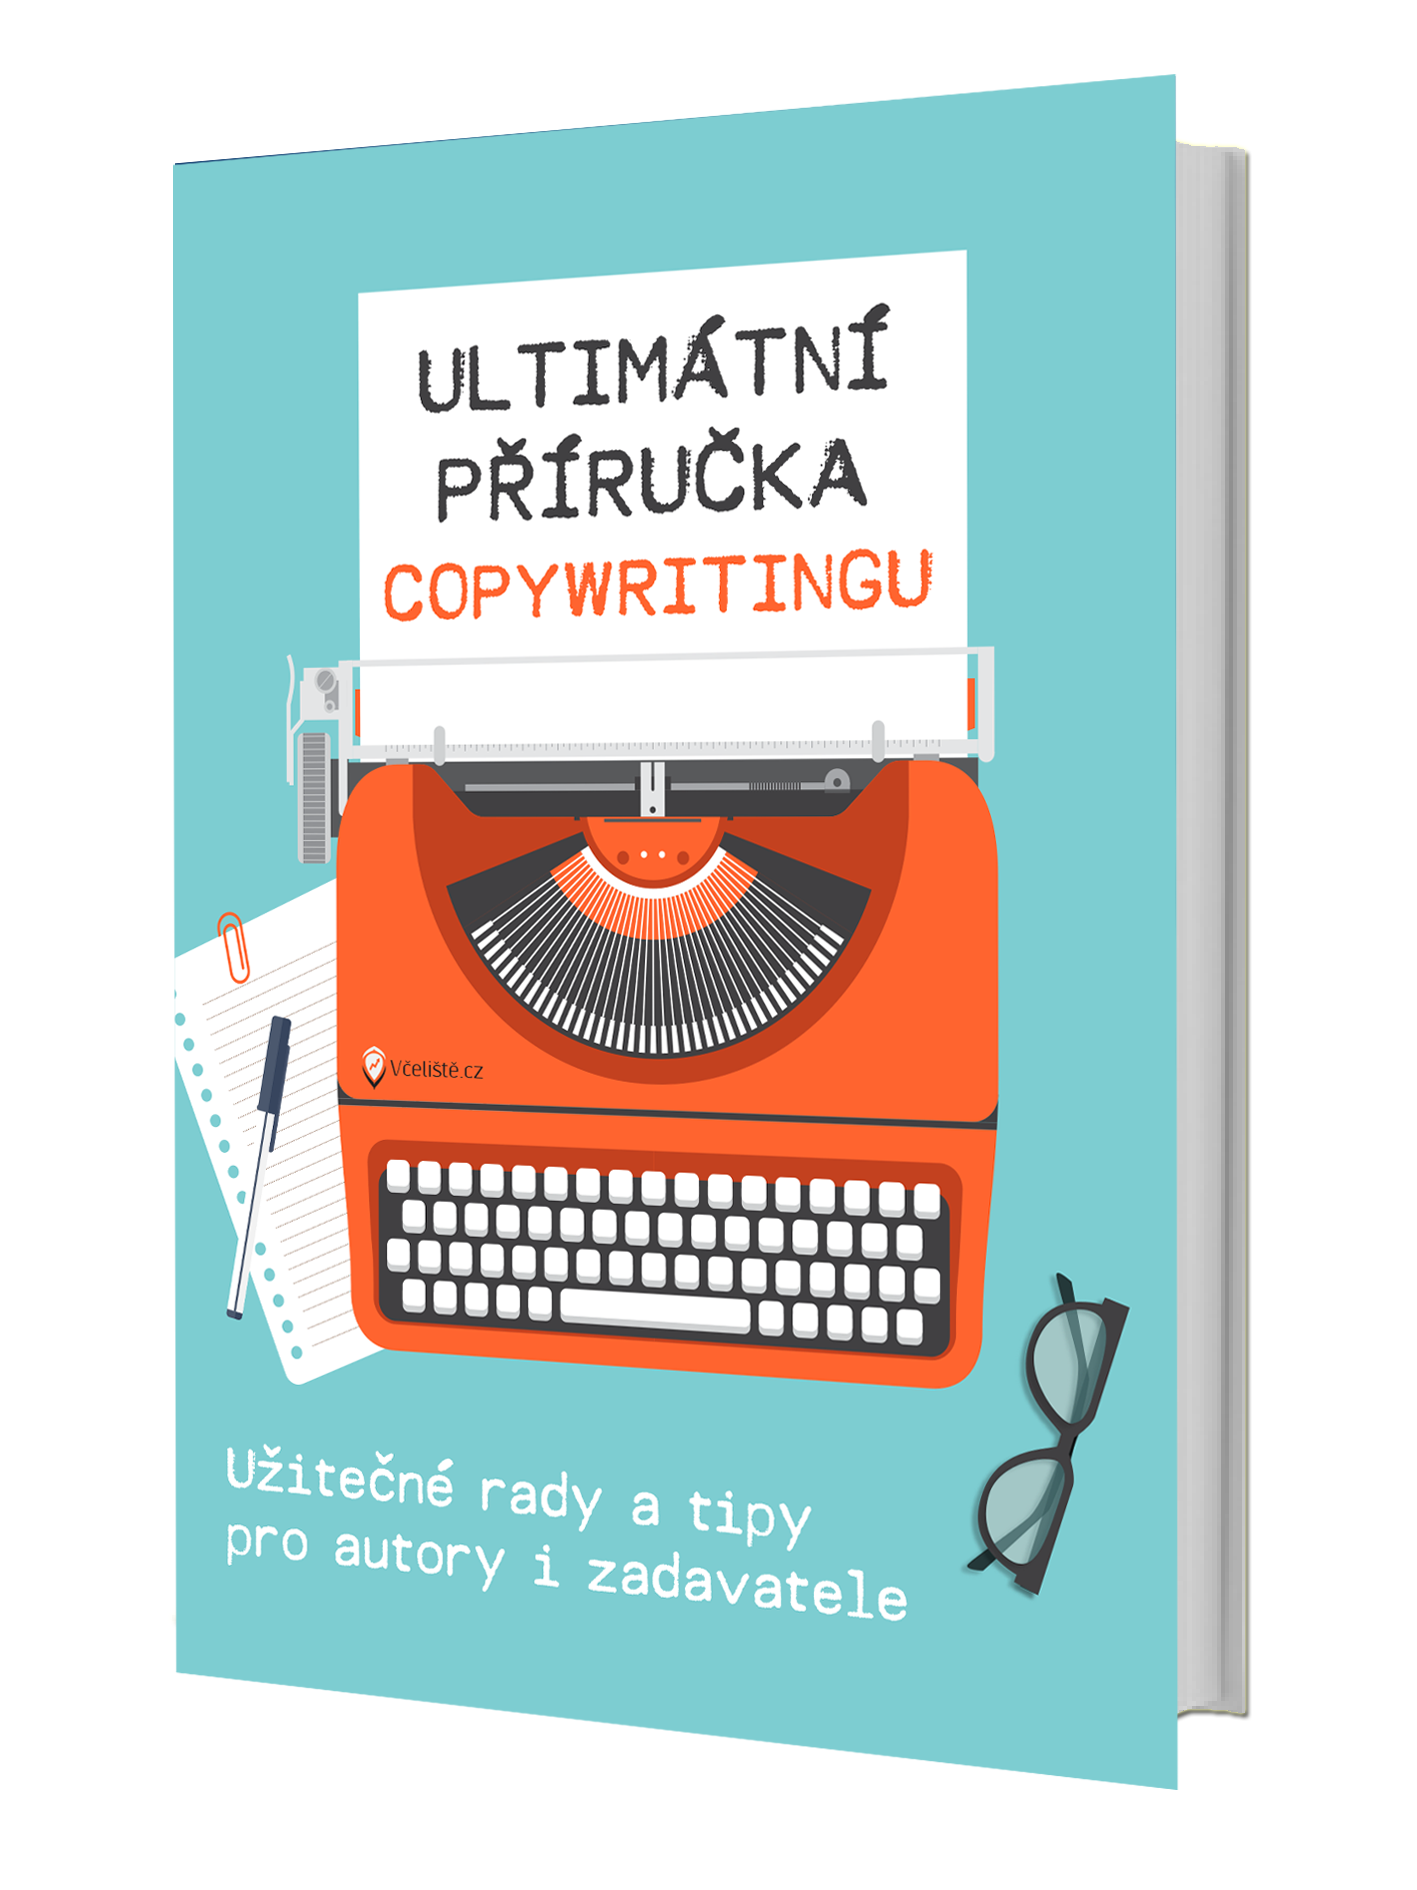 Ebook_3d_ultimat